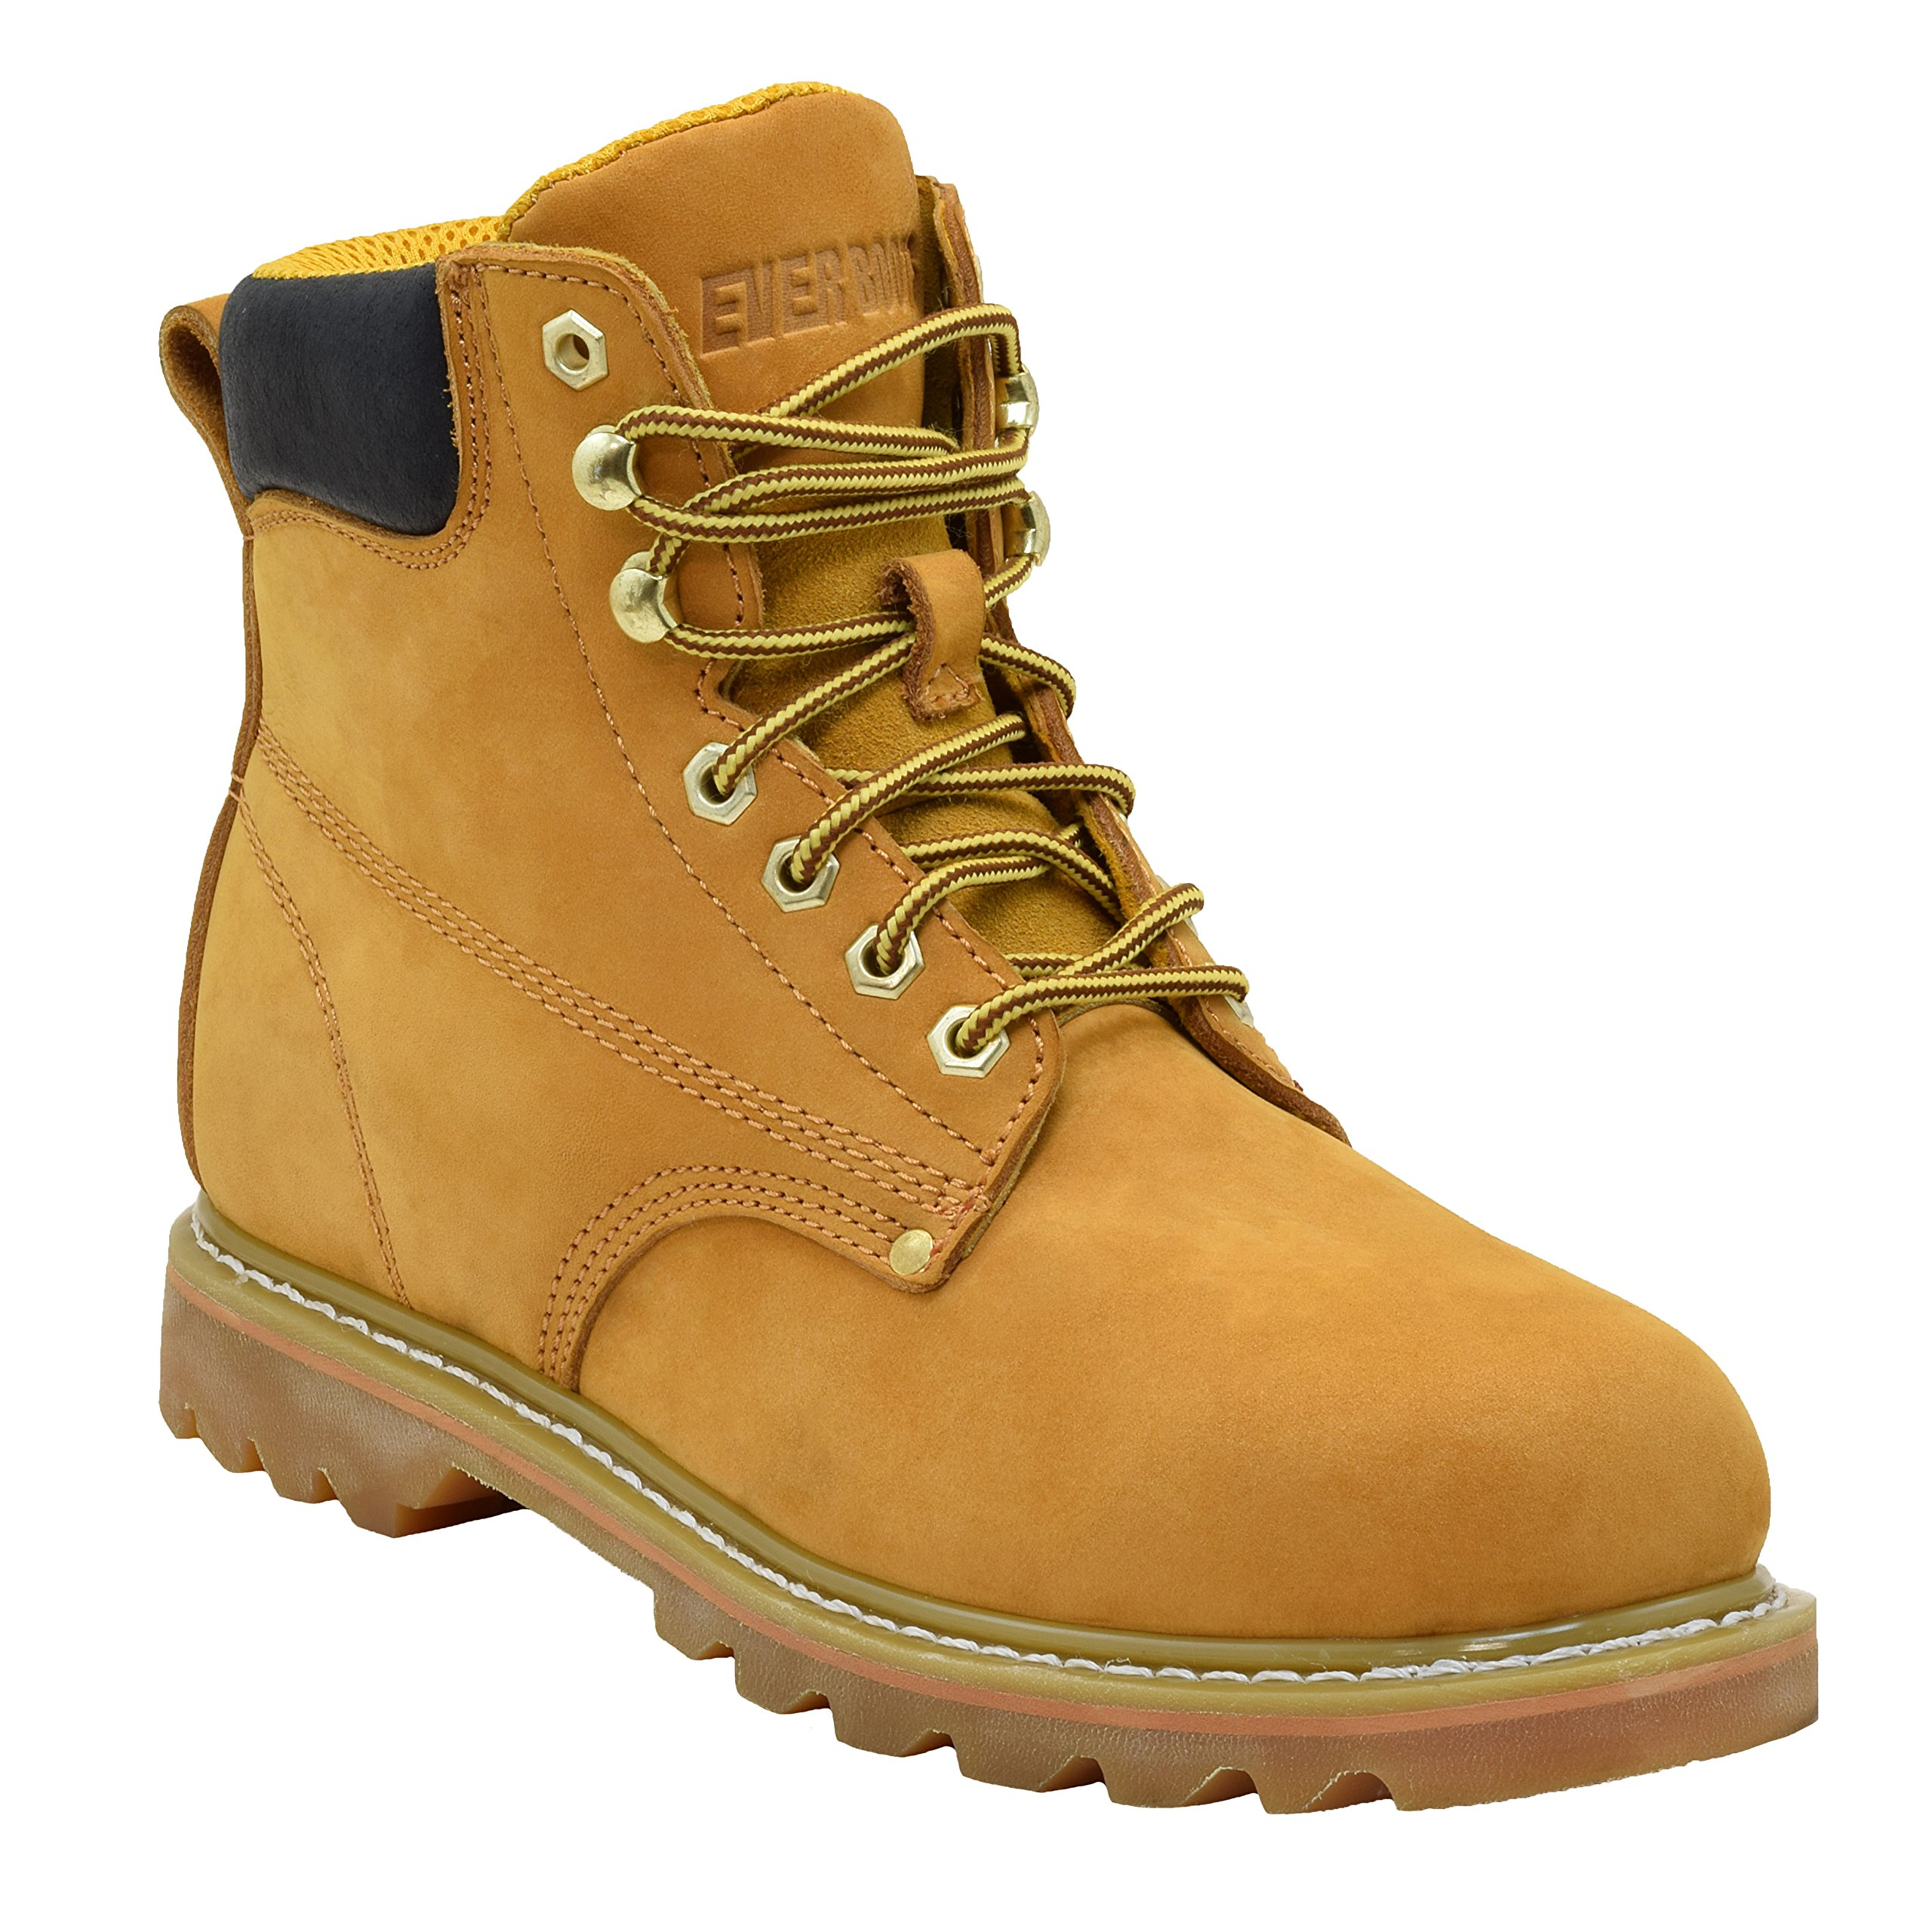 EVER BOOTS ''Tank Men's Soft Toe Oil Full Grain Leather Insulated Work Boots Construction Rubber Sole (9 D(M), TAN)